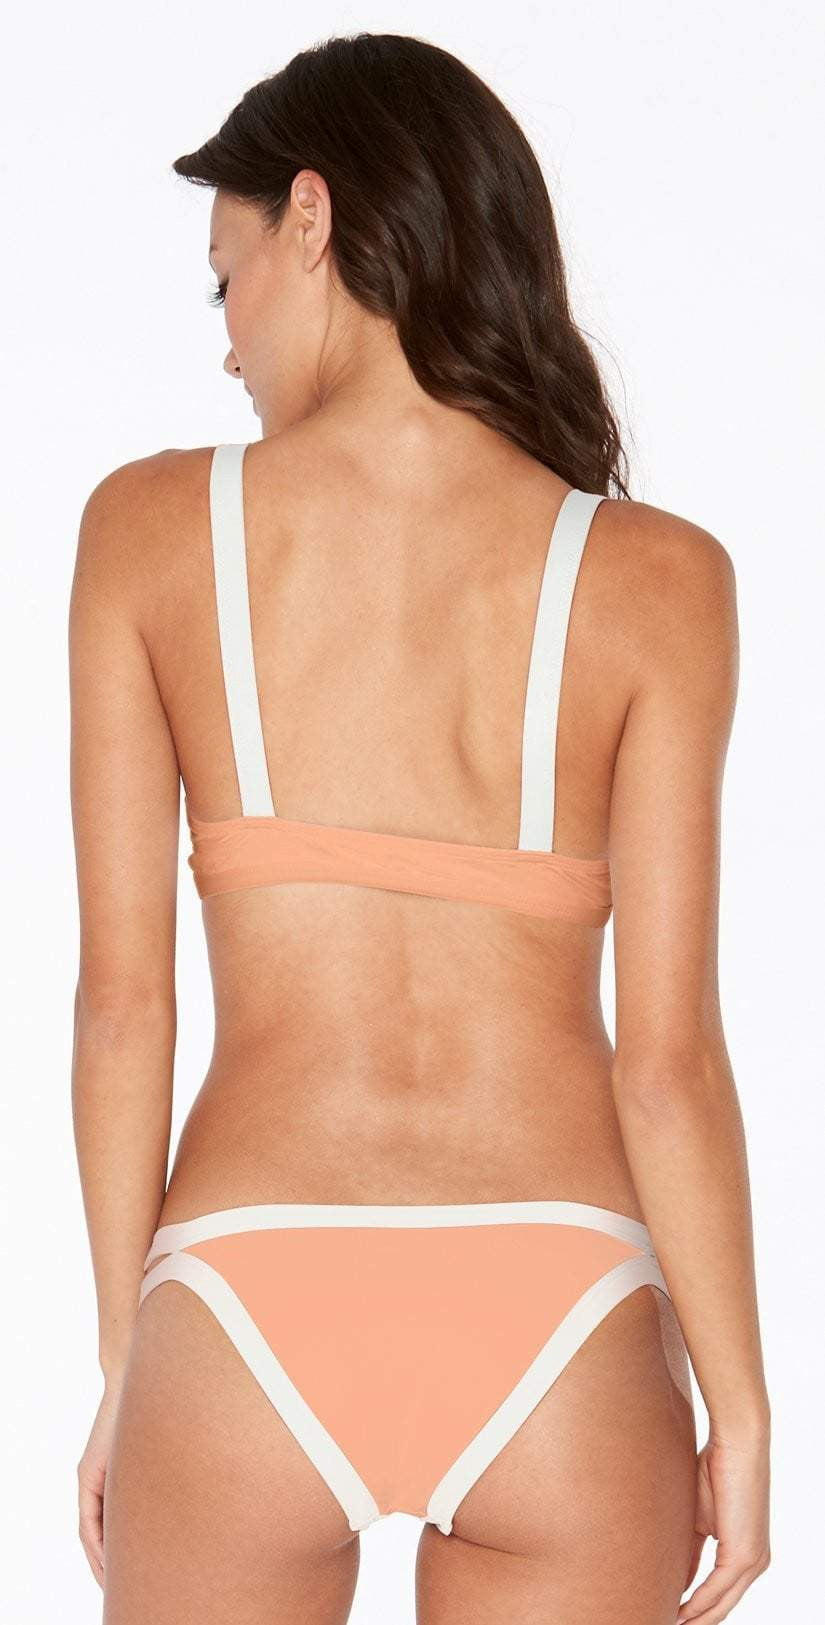 L Space Farrah Top in Tropical Peach CBFAT18-TRP back view top and bottom